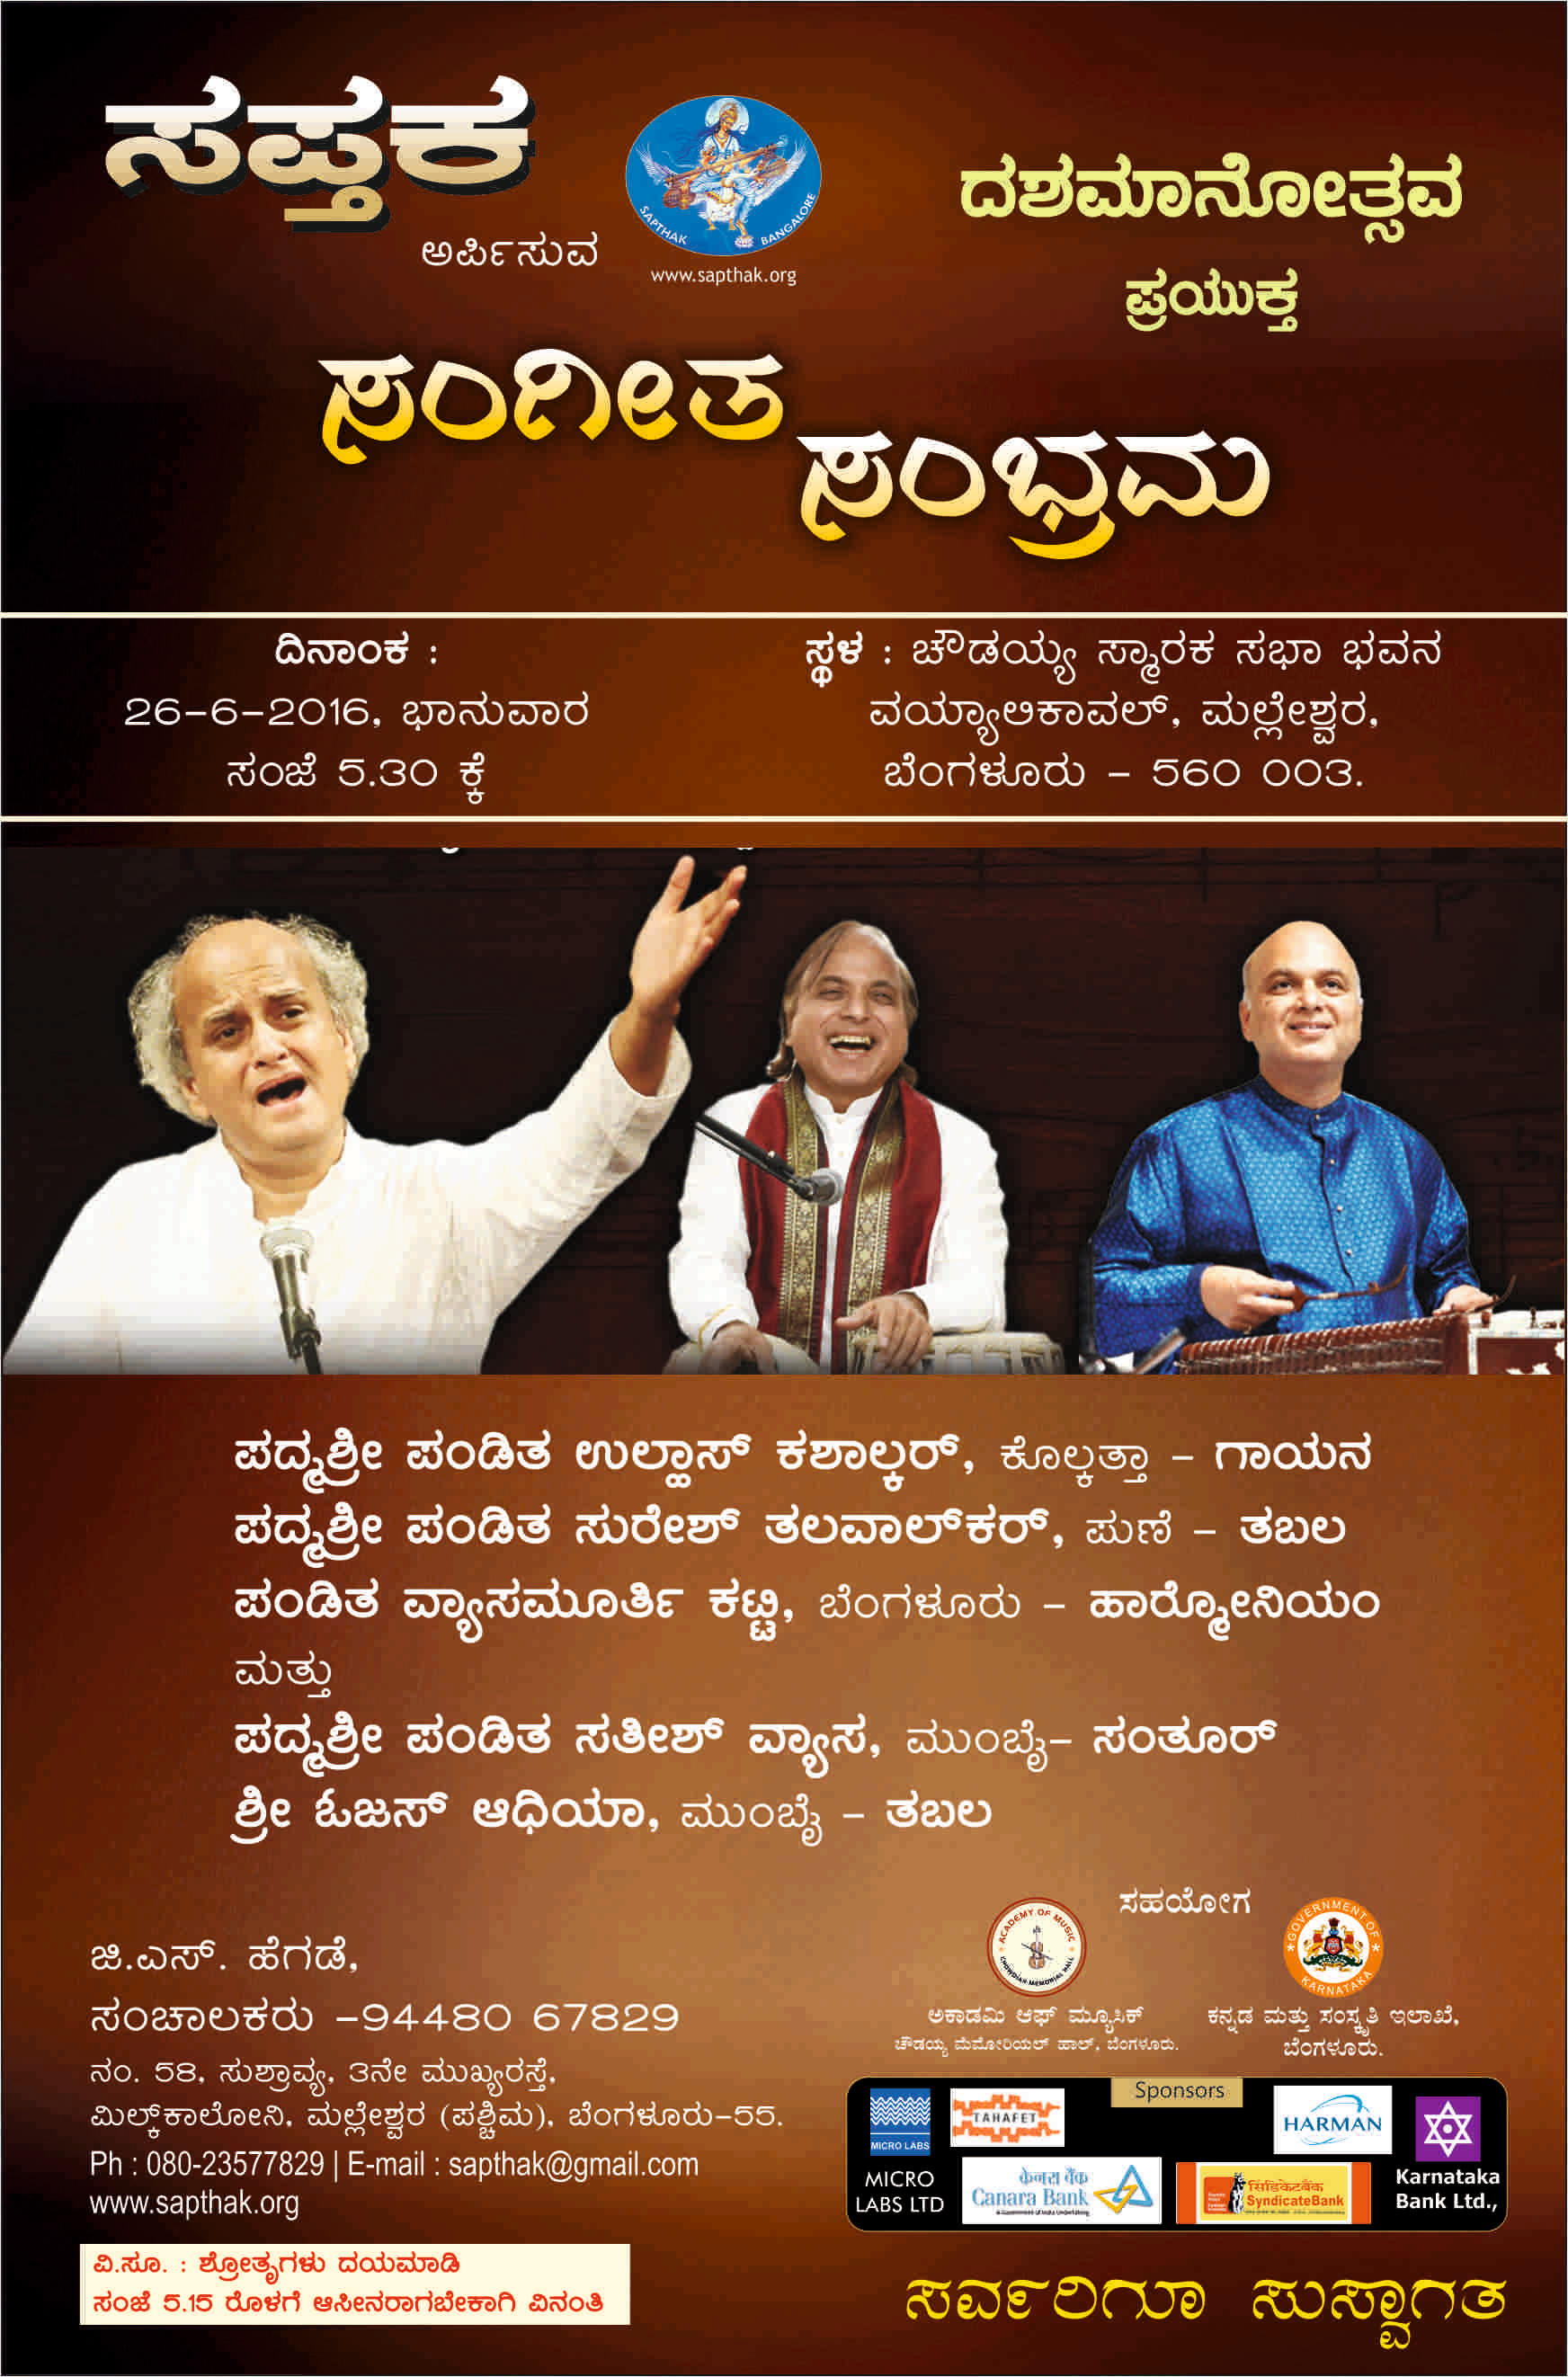 kannada invitation